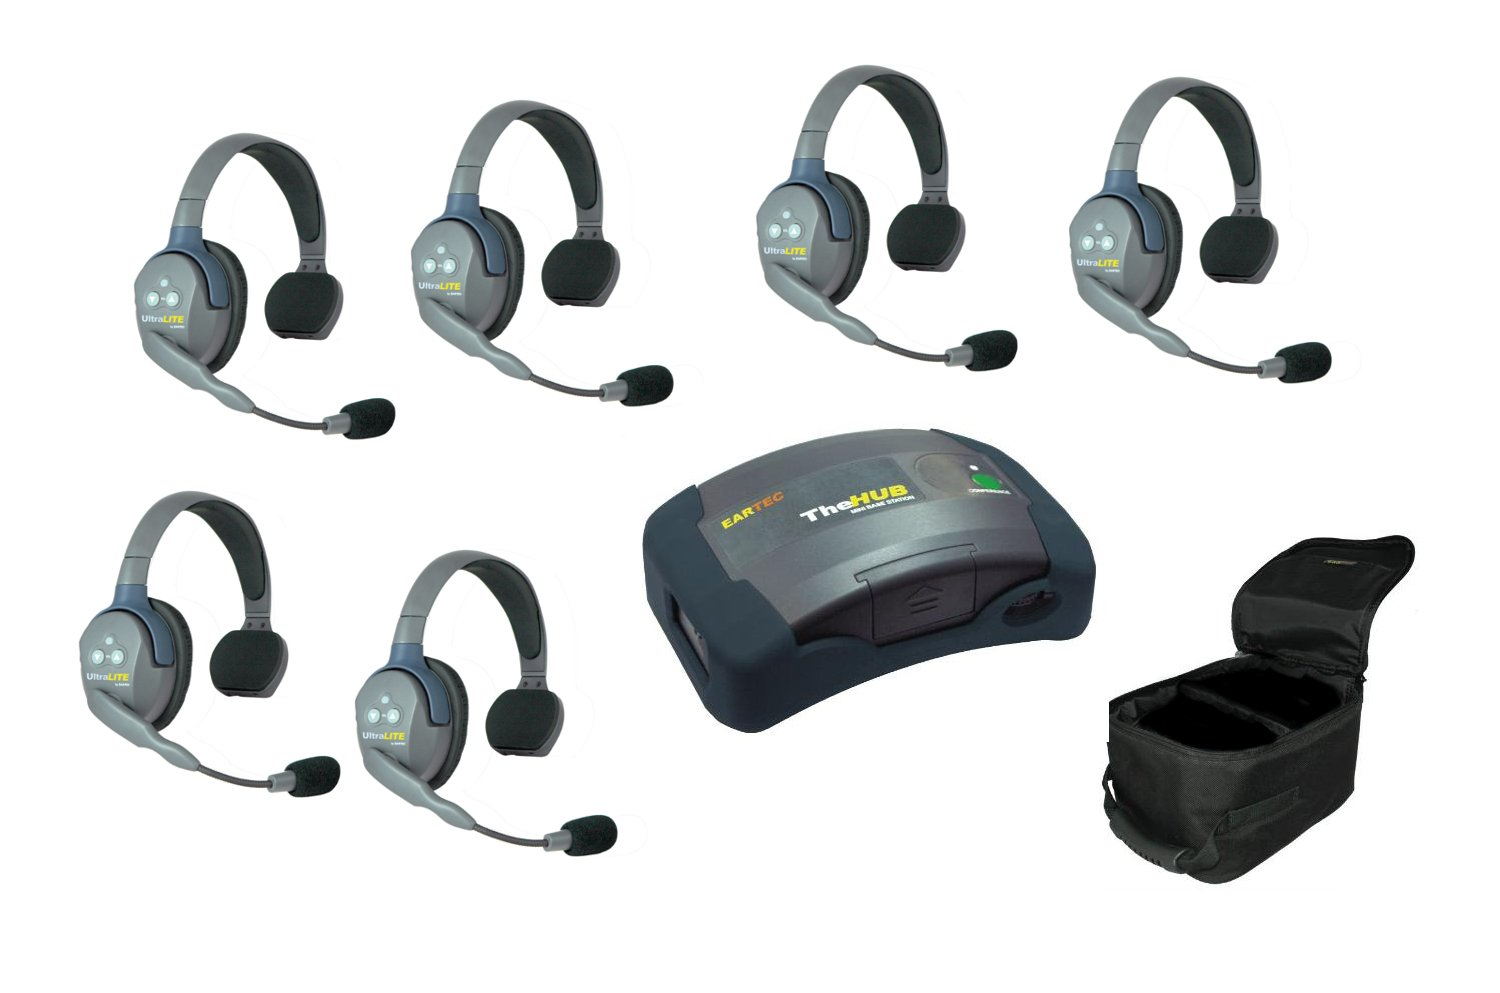 HUB/UltraLITE Full Duplex Intercom System with 6 Single Headsets, Batteries & Case